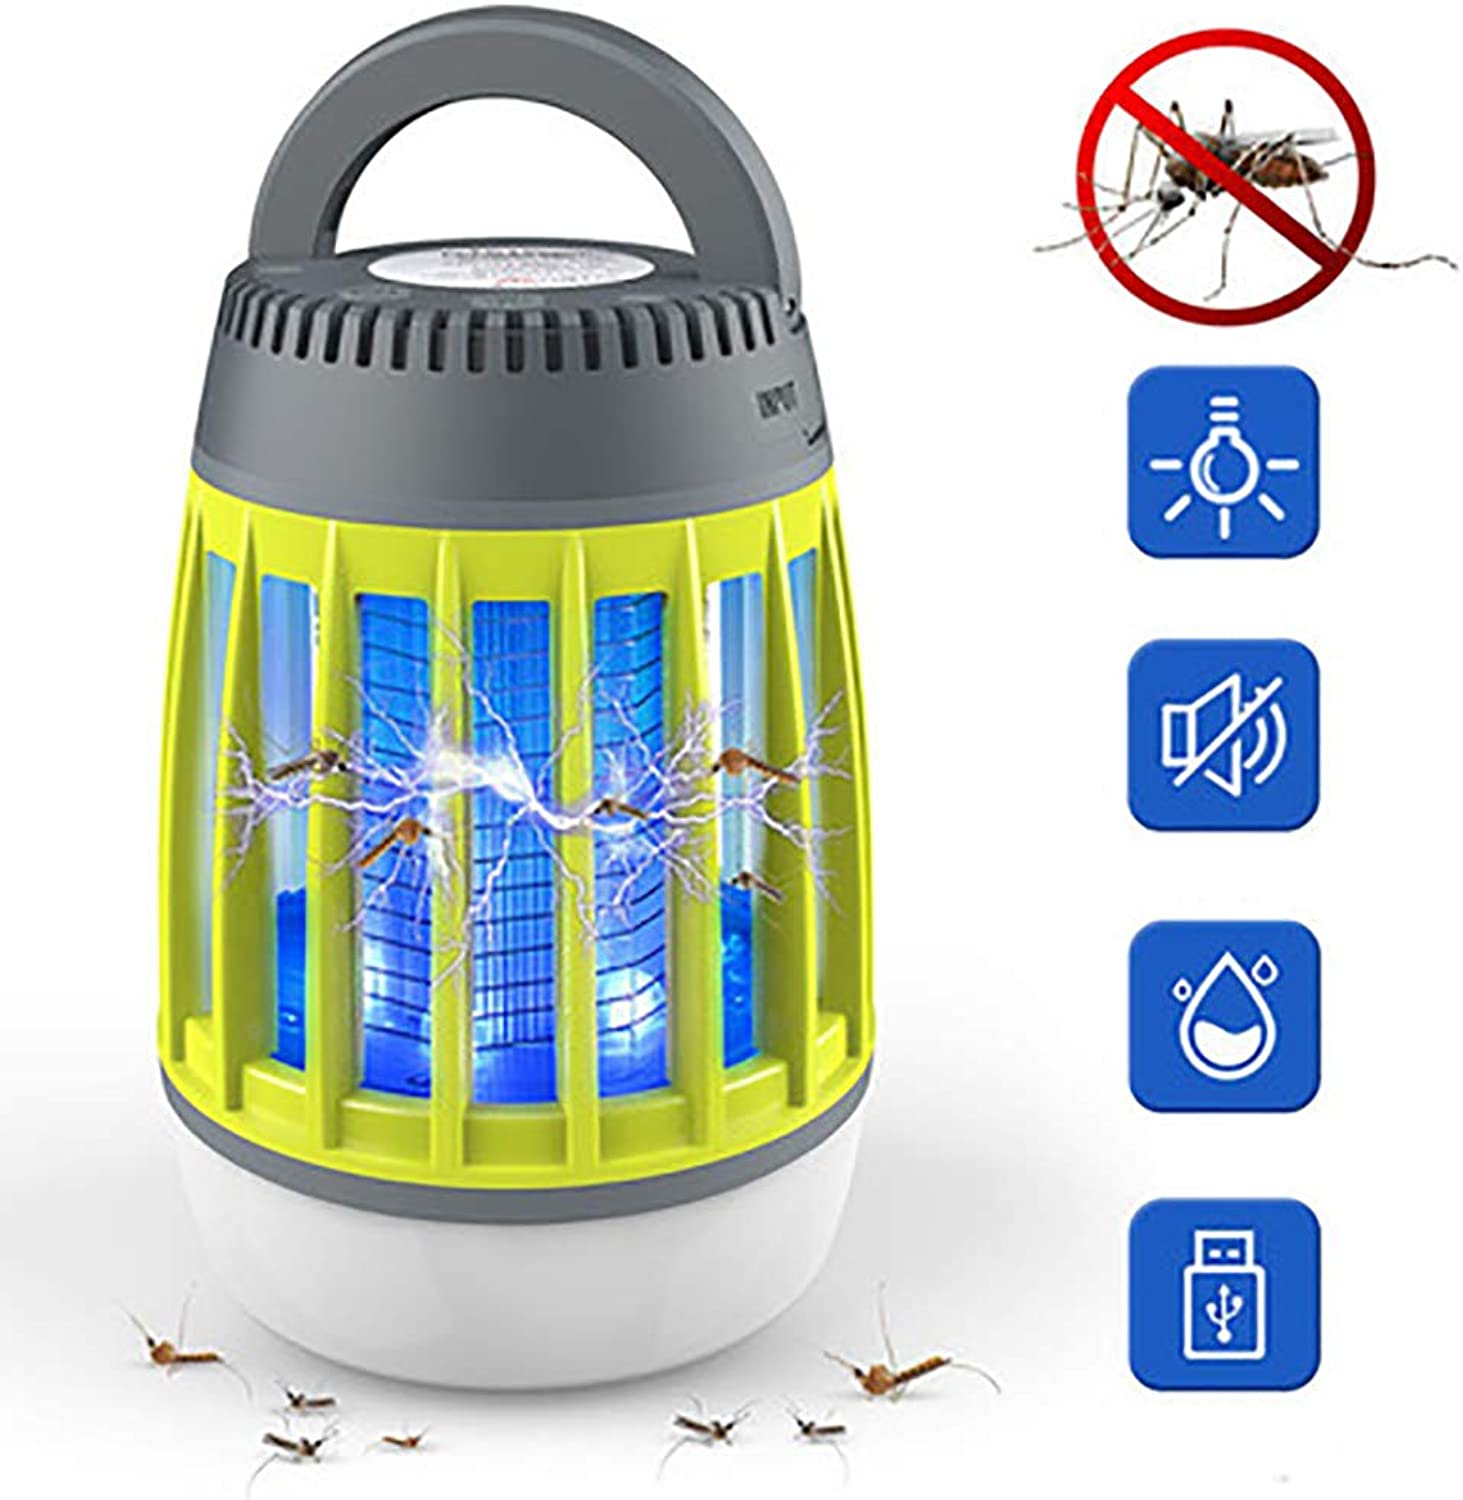 LED Camping Lantern MosquitoTent Light Mosquito Killer Lamp,Lightweight IP67 Waterproof and USB Rechargeable,Anti Bug Insect Repellent,Outdoor Green+Grey